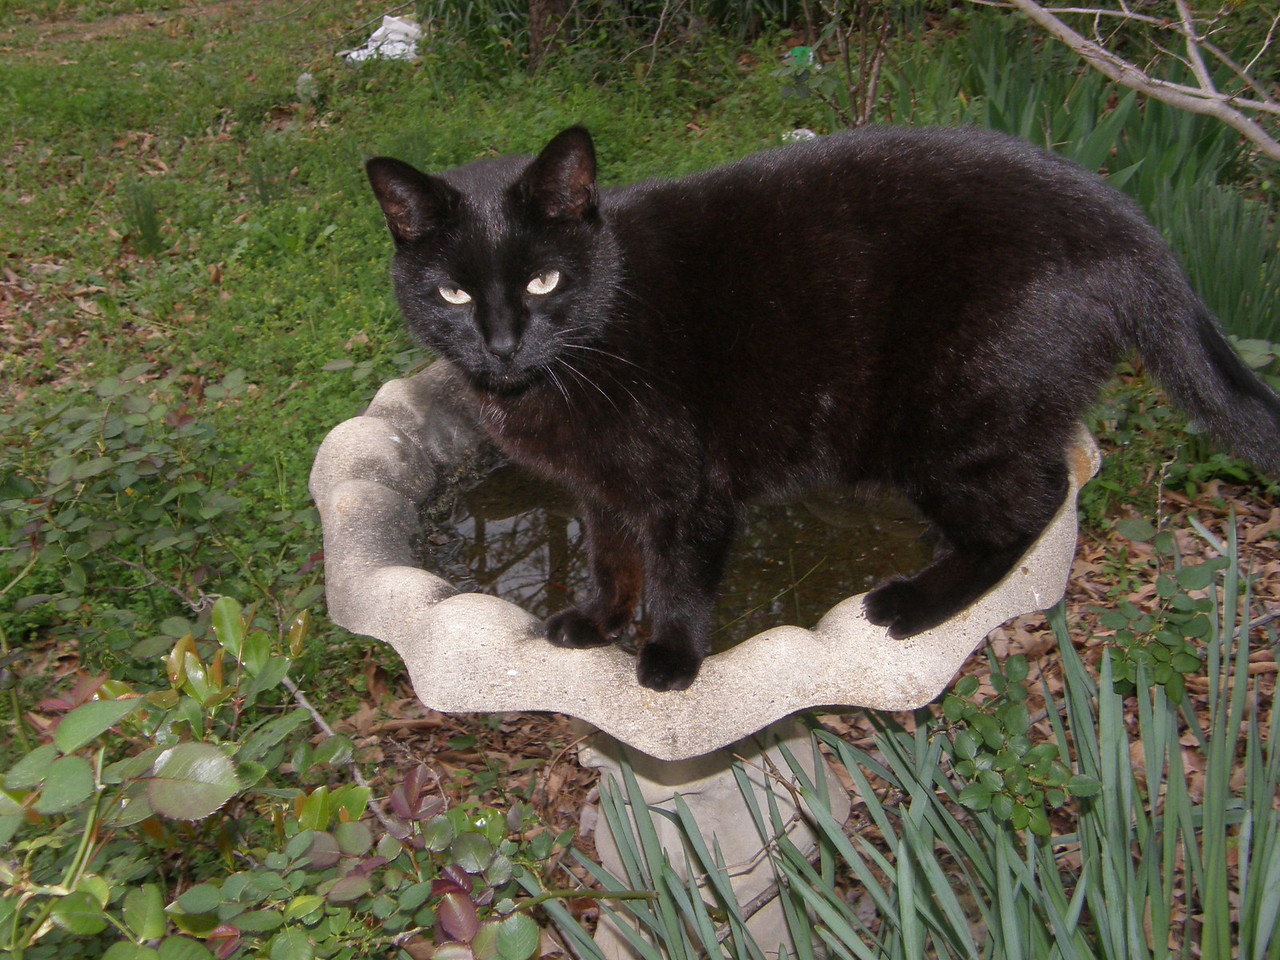 Salem, takes a pause while drinking from the bird bath.